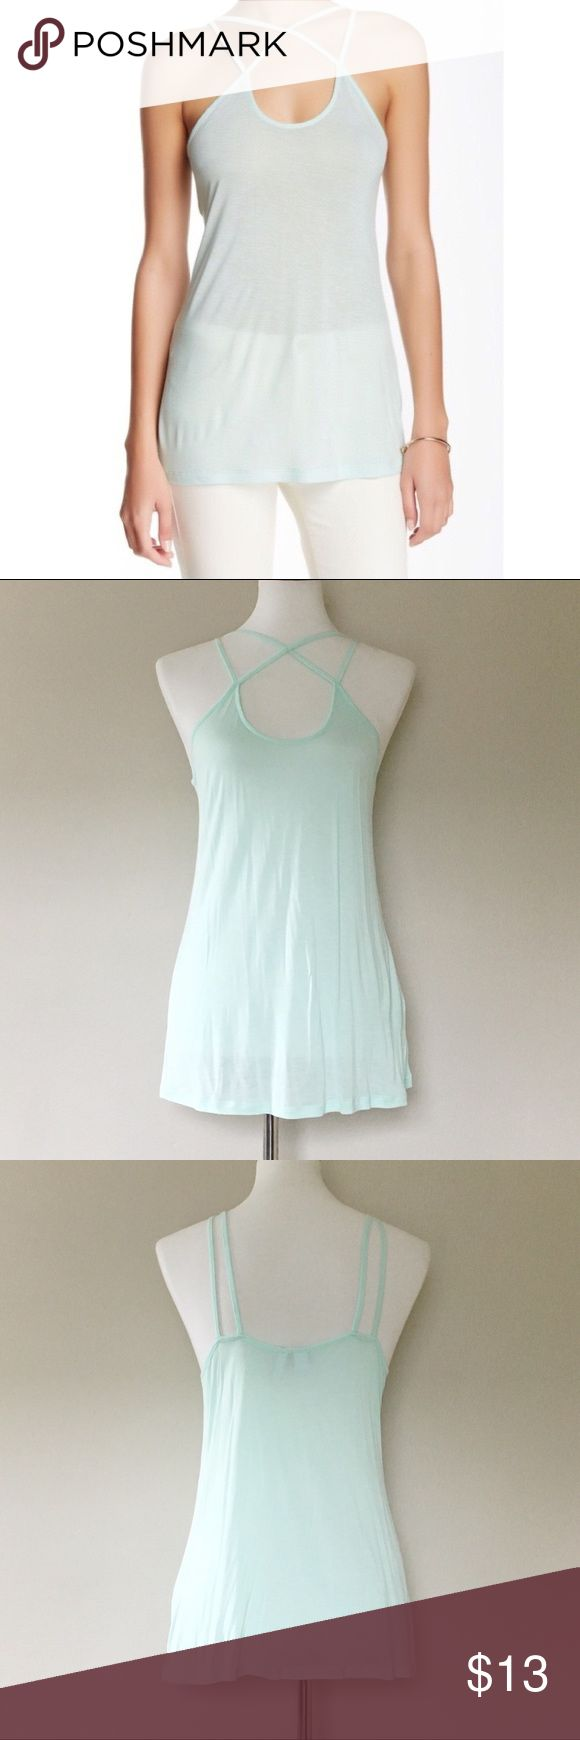 NWOT Mint Free Press Strappy Tank NWOT Mint Free Press Strappy Tank -Nordstrom brand Free Press -Pretty mint color, (closer to my pictures as opposed to stock photo) -strappy cage front fit -very soft and comfortable -New without tags! Nordstrom Tops Tank Tops